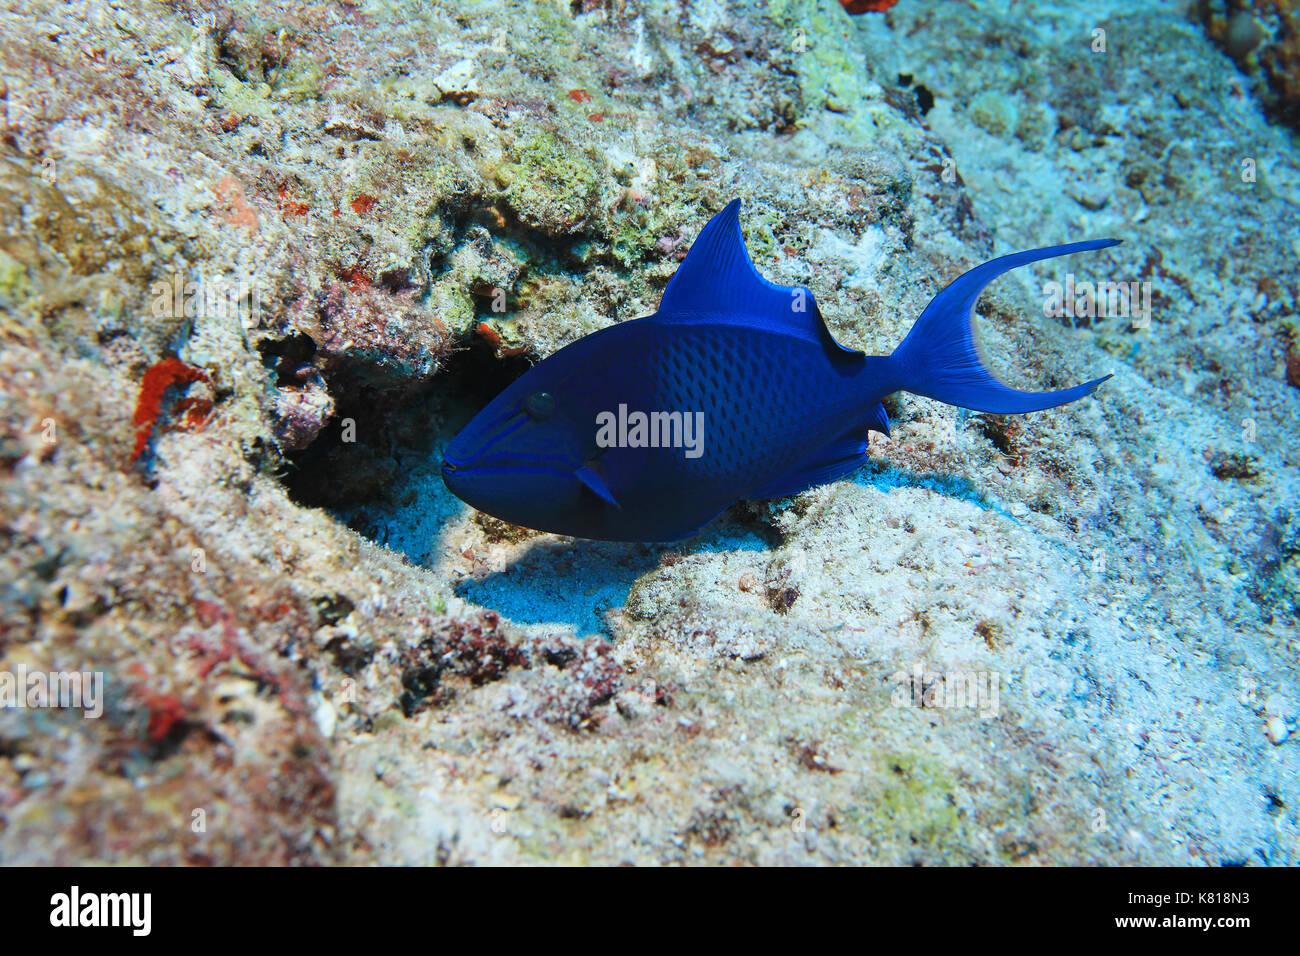 Red-toothed triggerfish (Odonus niger) underwater in the tropical coral reef - Stock Image